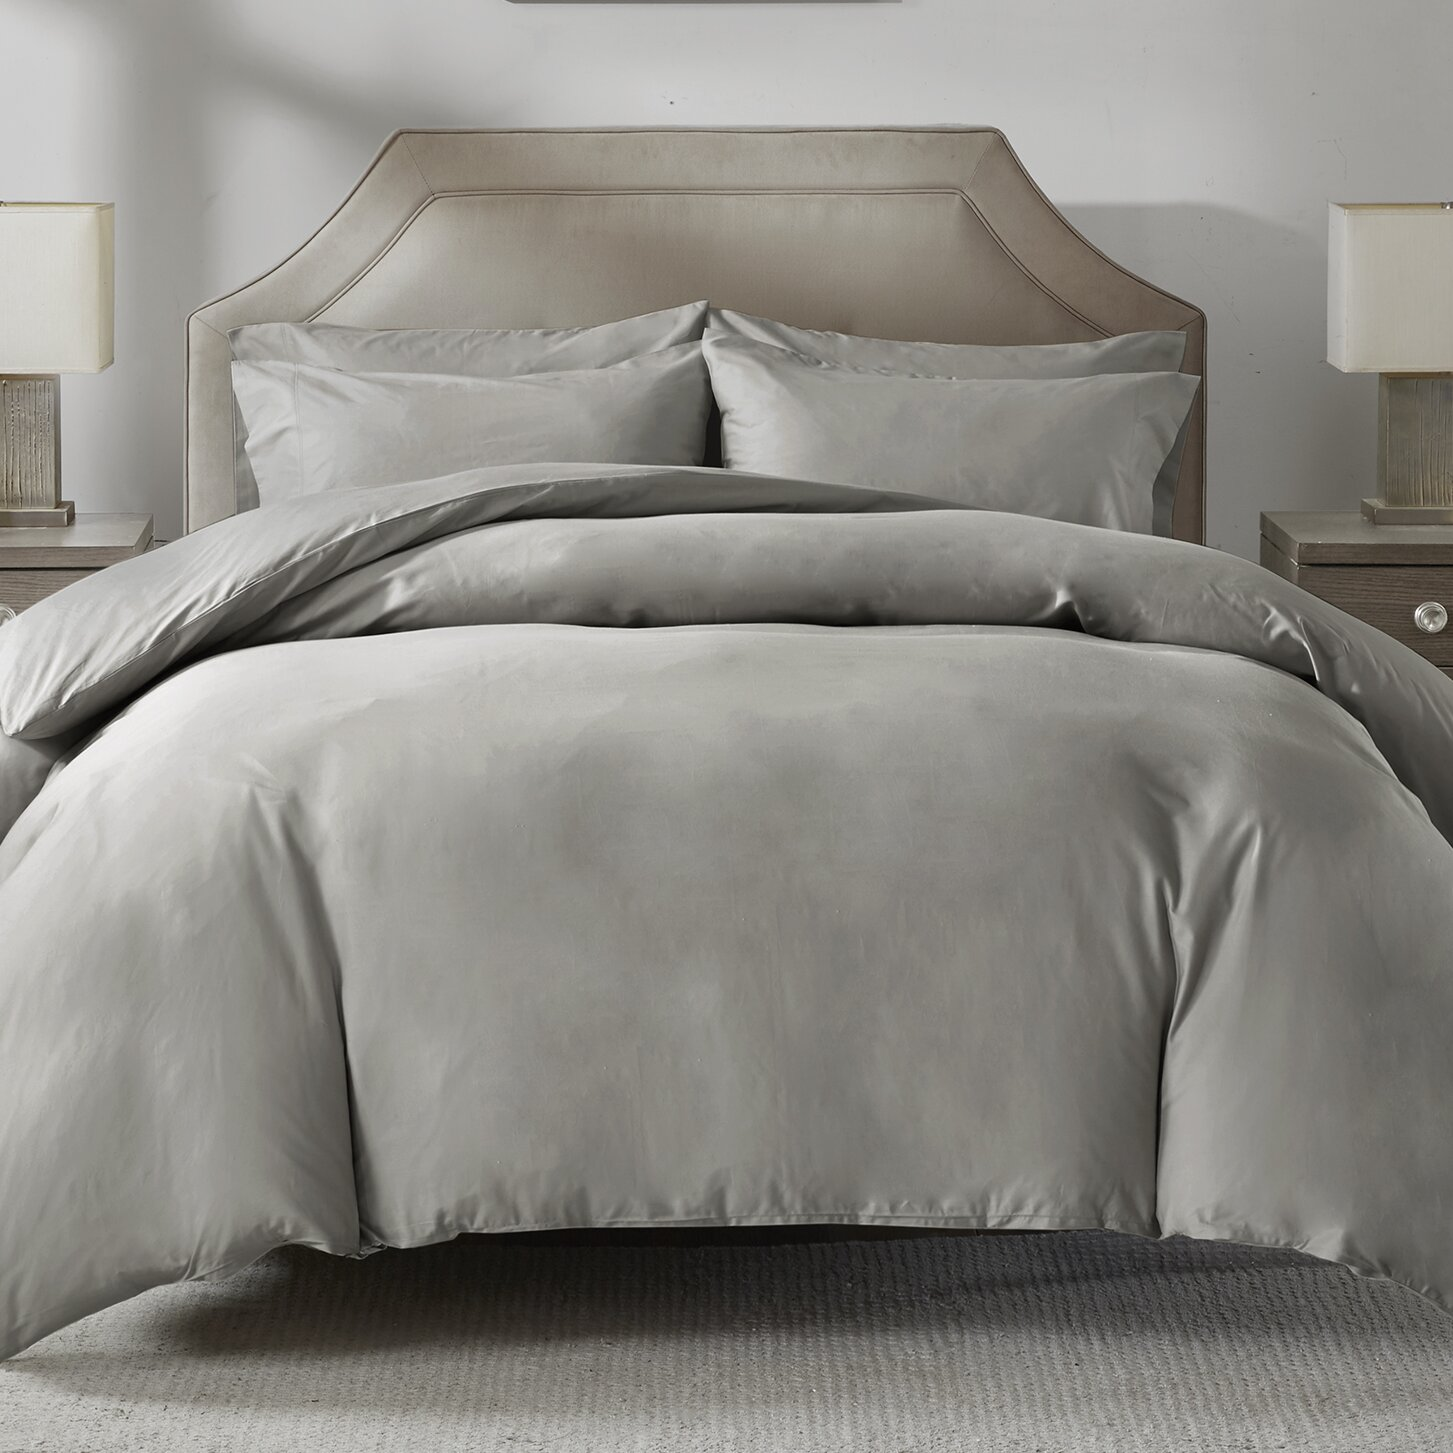 Laurel Foundry Modern Farmhouse Motte 4 Piece Duvet Cover Set & Reviews